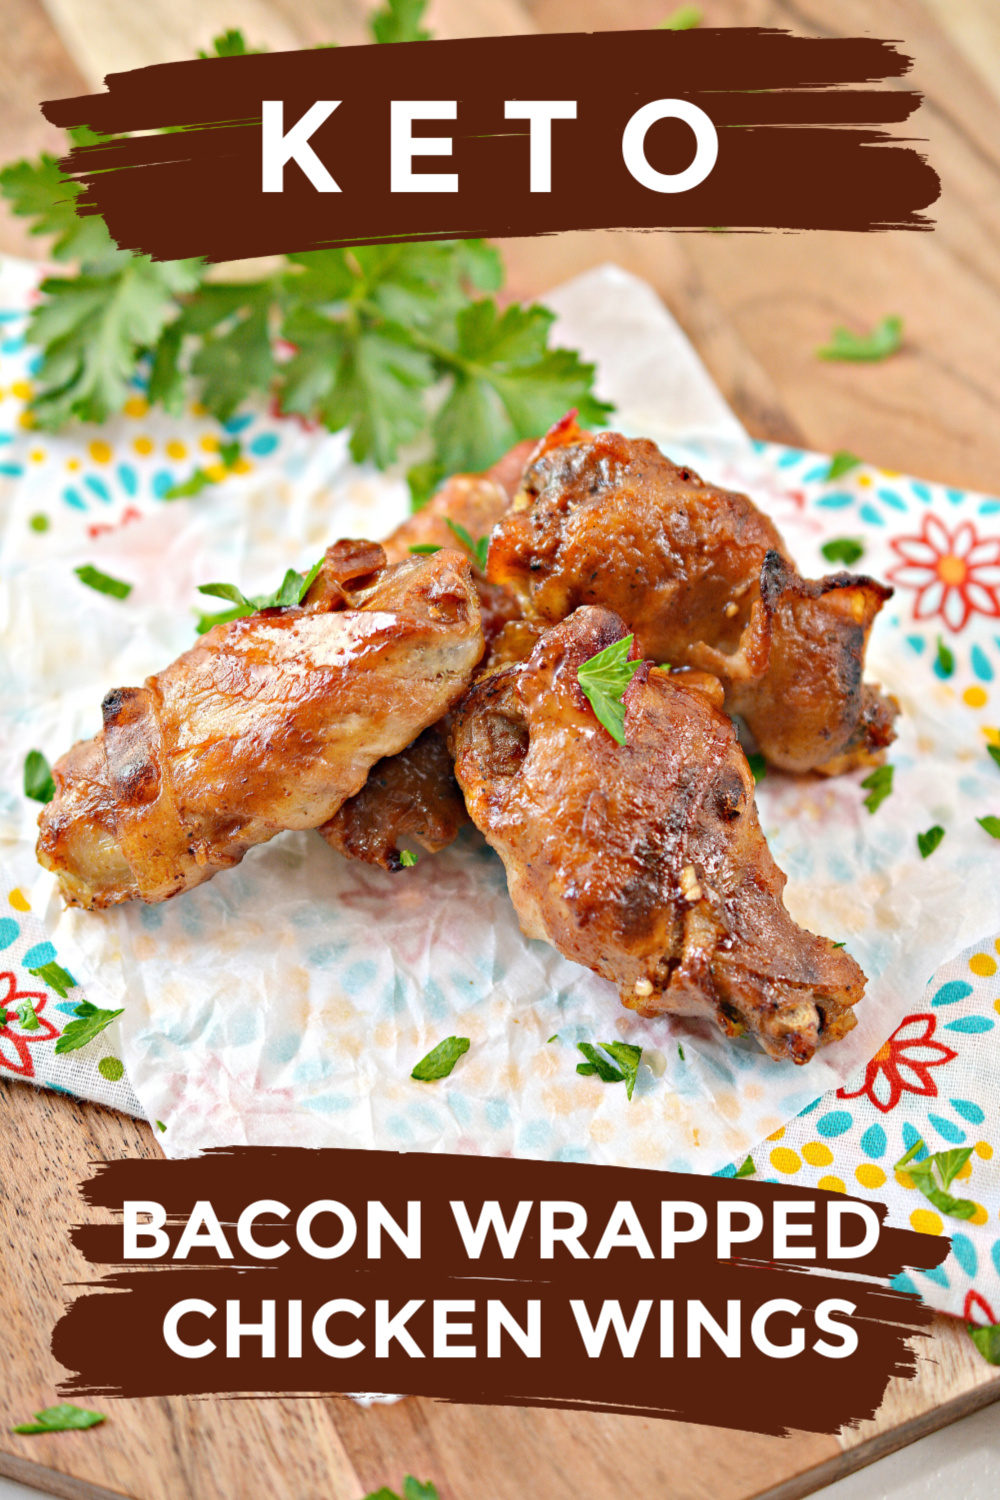 Keto Bacon Wrapped Chicken Wings